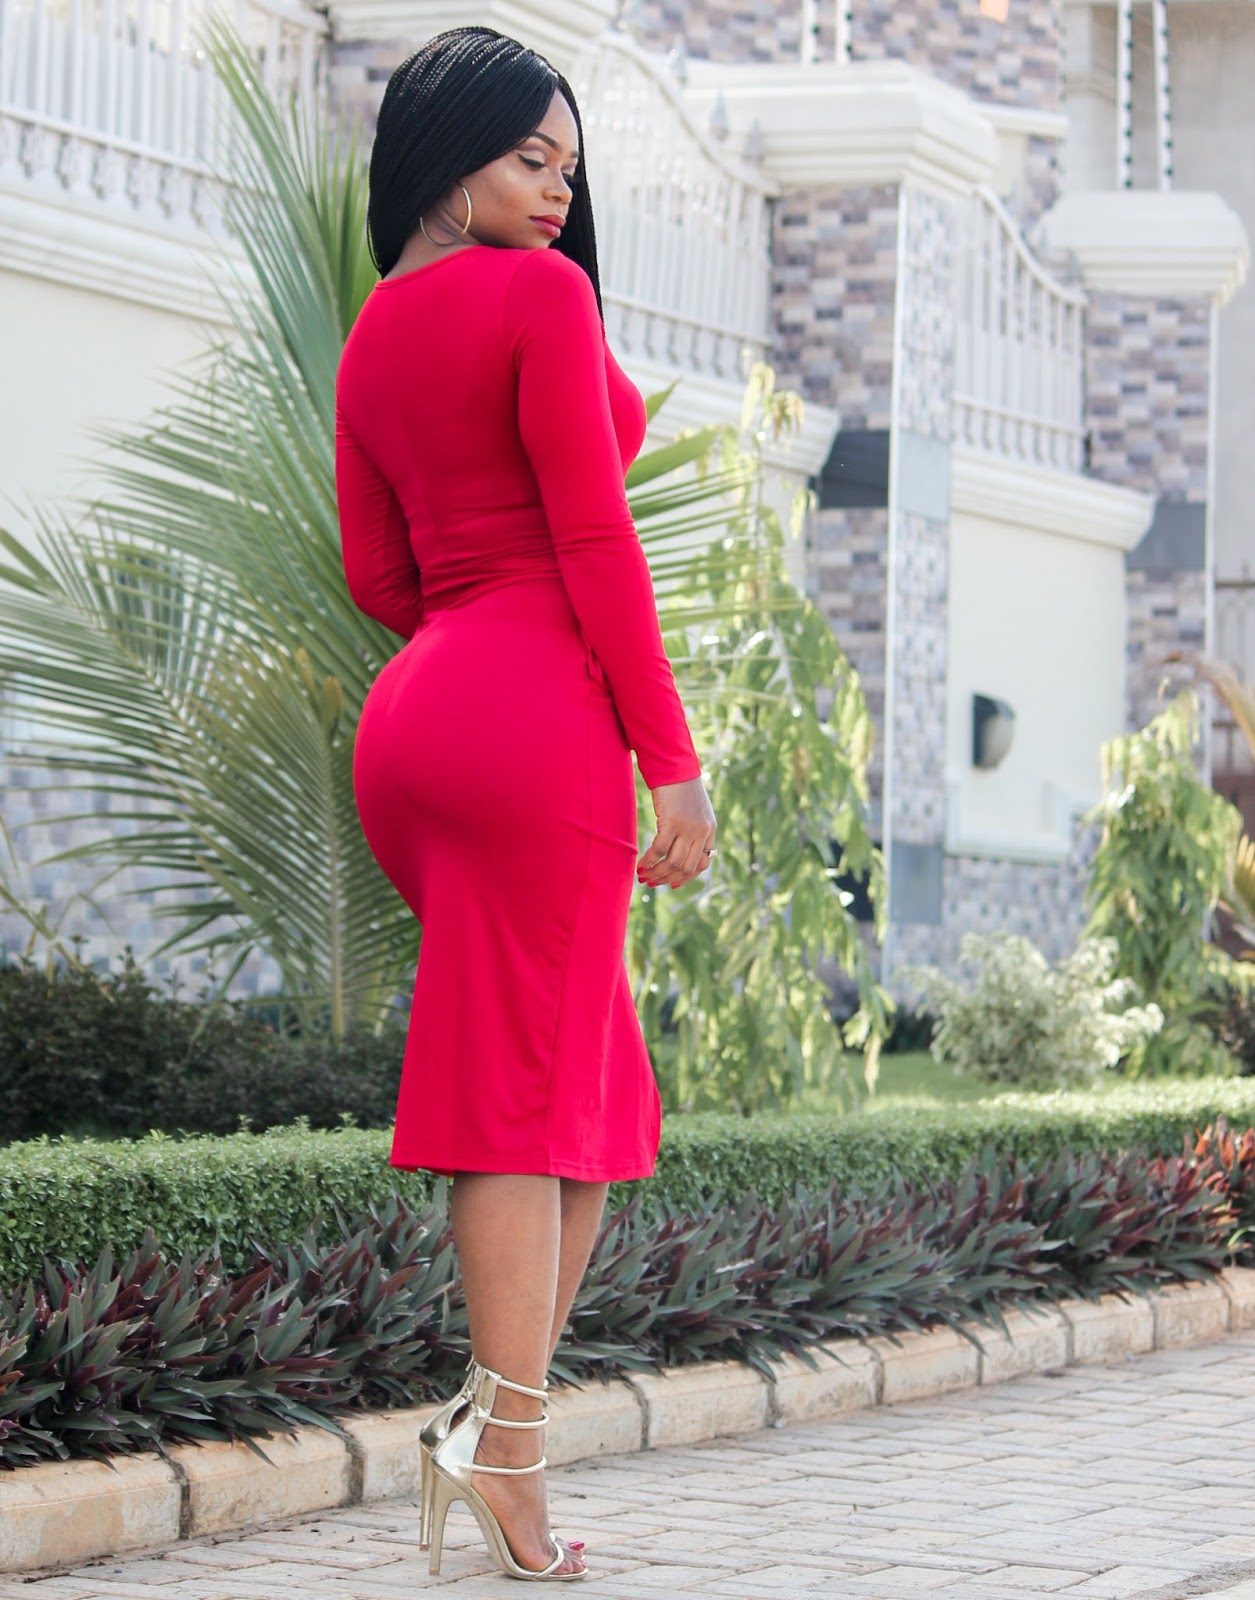 RED SLIT DRESS - Red Bodycon Dress with slit from SammyDress